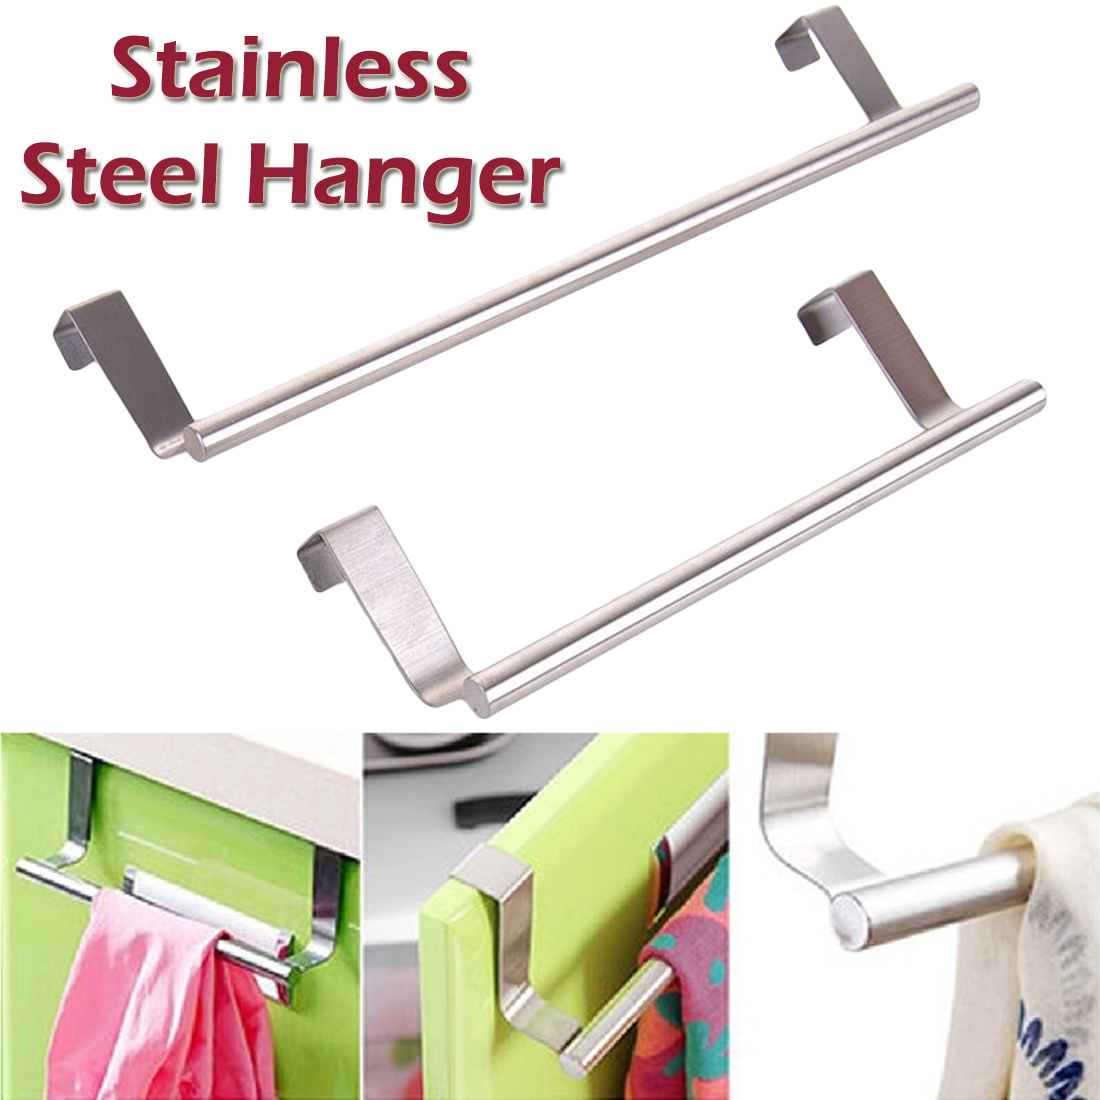 Stainless Steel Towel Bar with Hooks Hangs Inside or Outside Cabinet Doors Towel Holder for Bathroom and Kitchen H.E